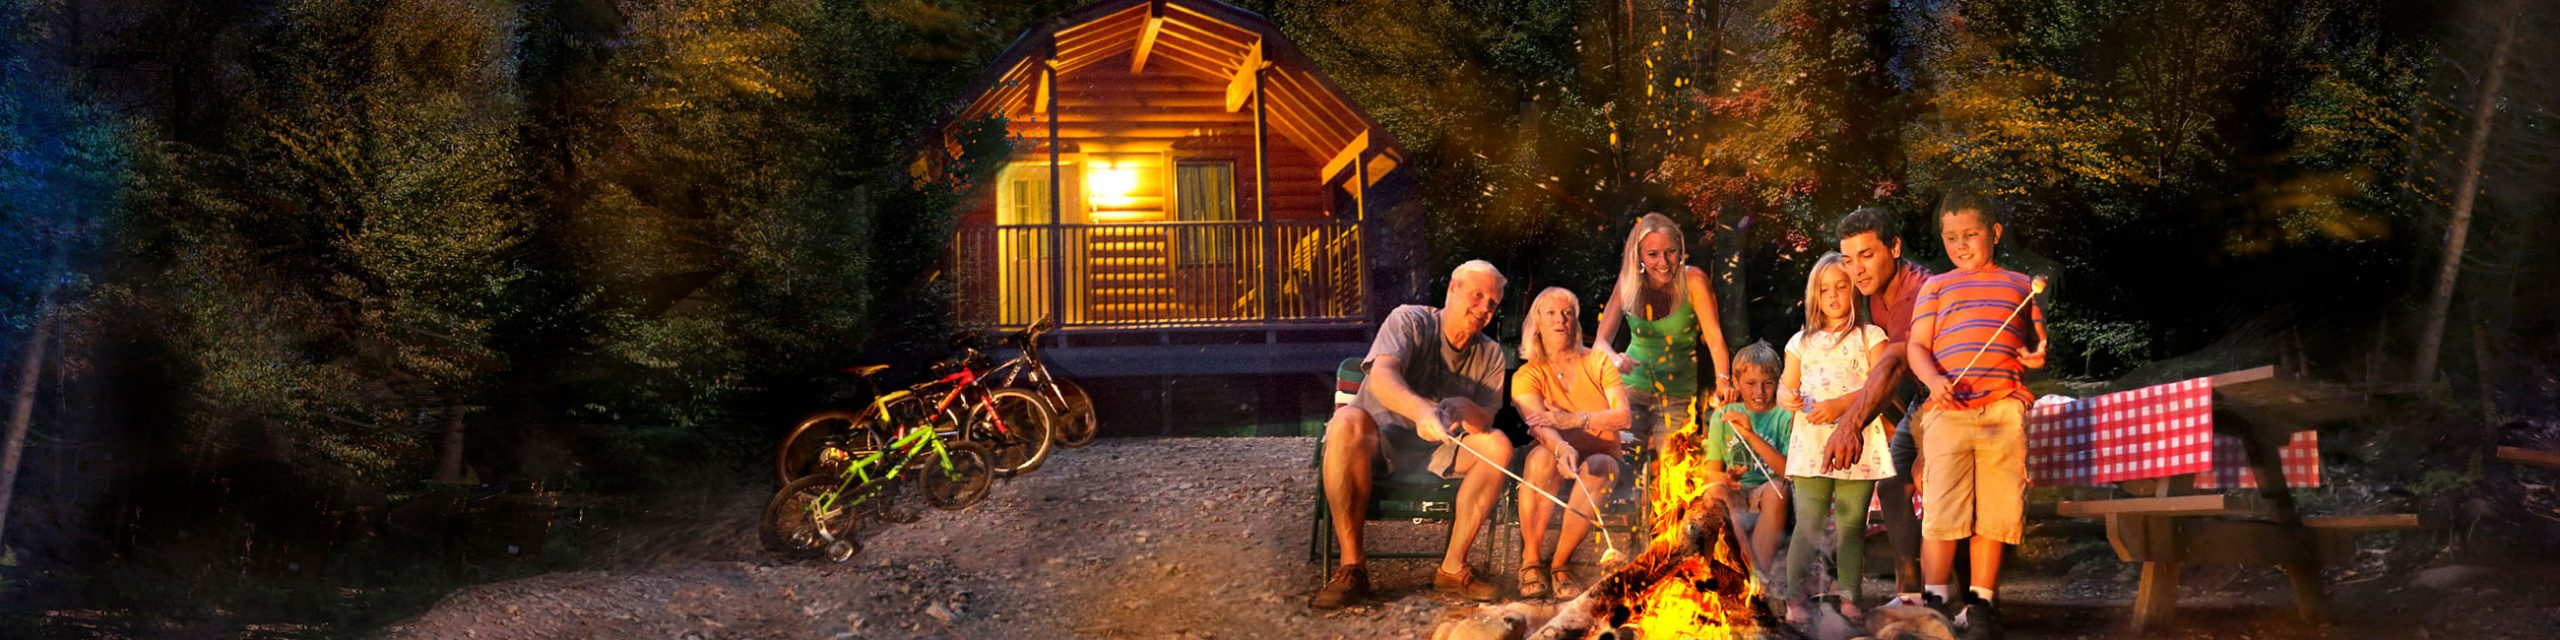 OFCR – Web Banner – Camp Fire Family 2600×650